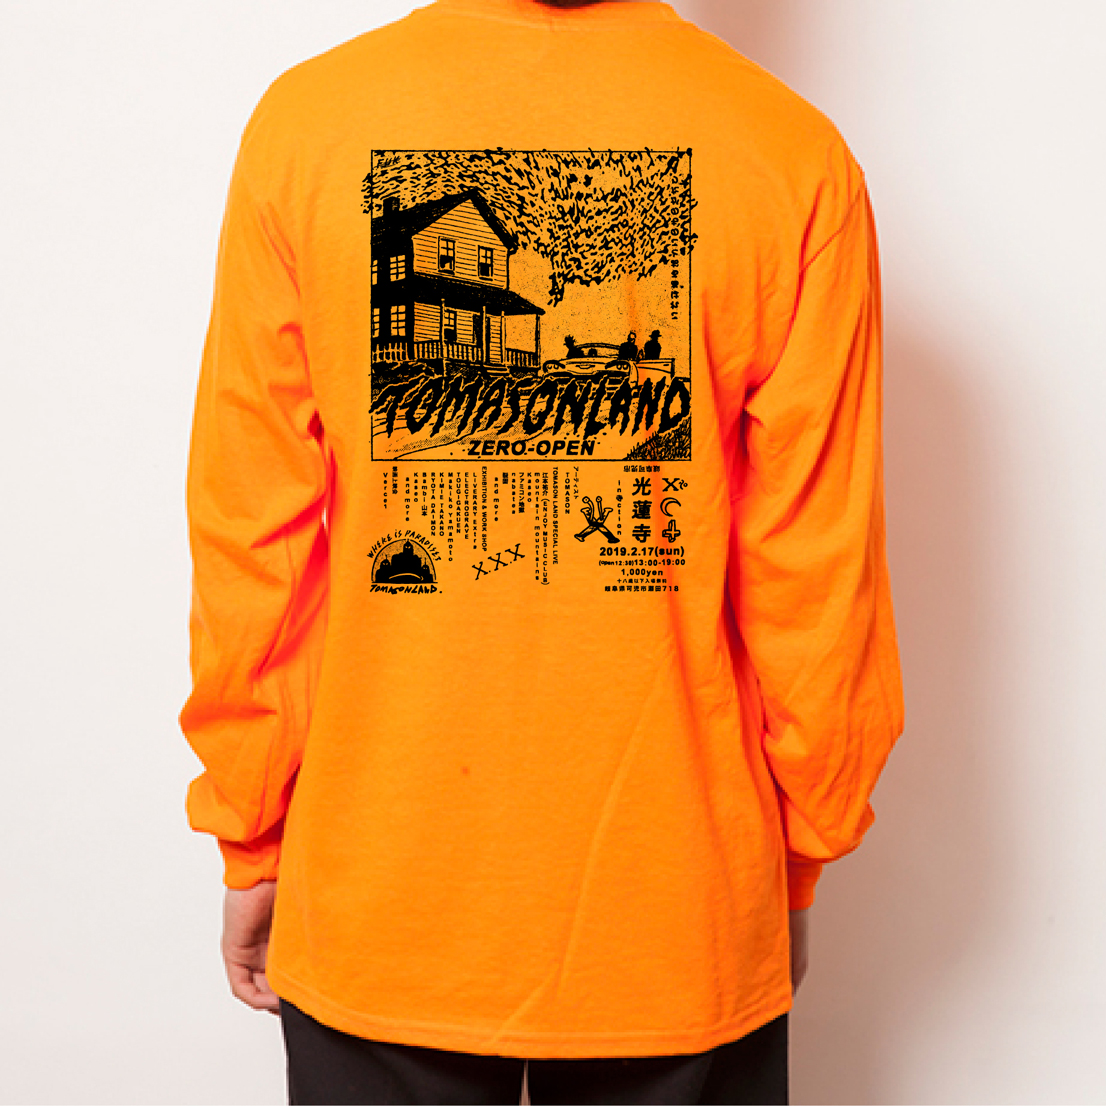 tmsn_tshirt_1_orange